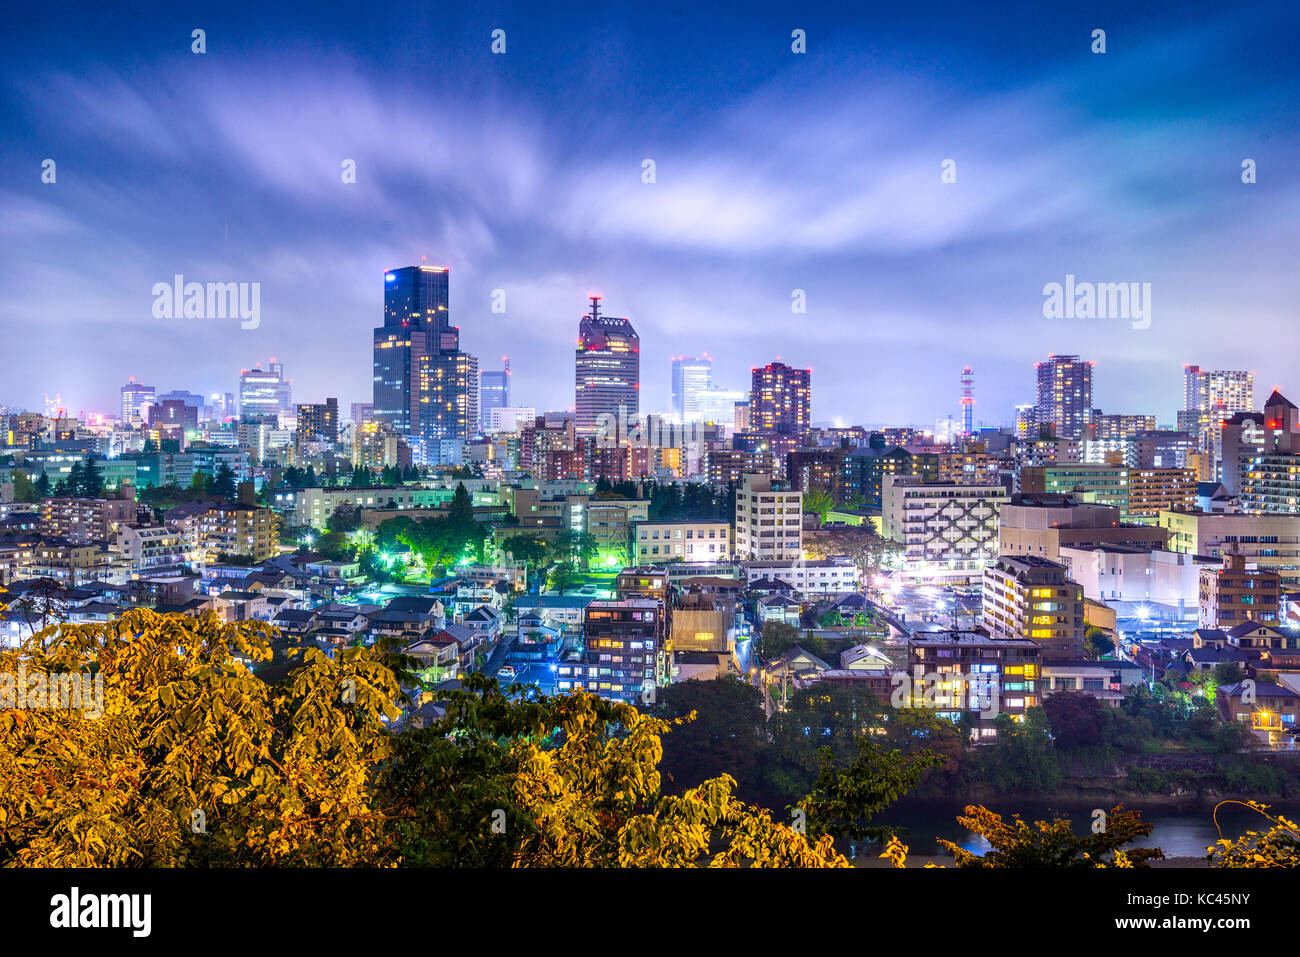 Sendai, Miyagi, Japon cityscape at night Photo Stock